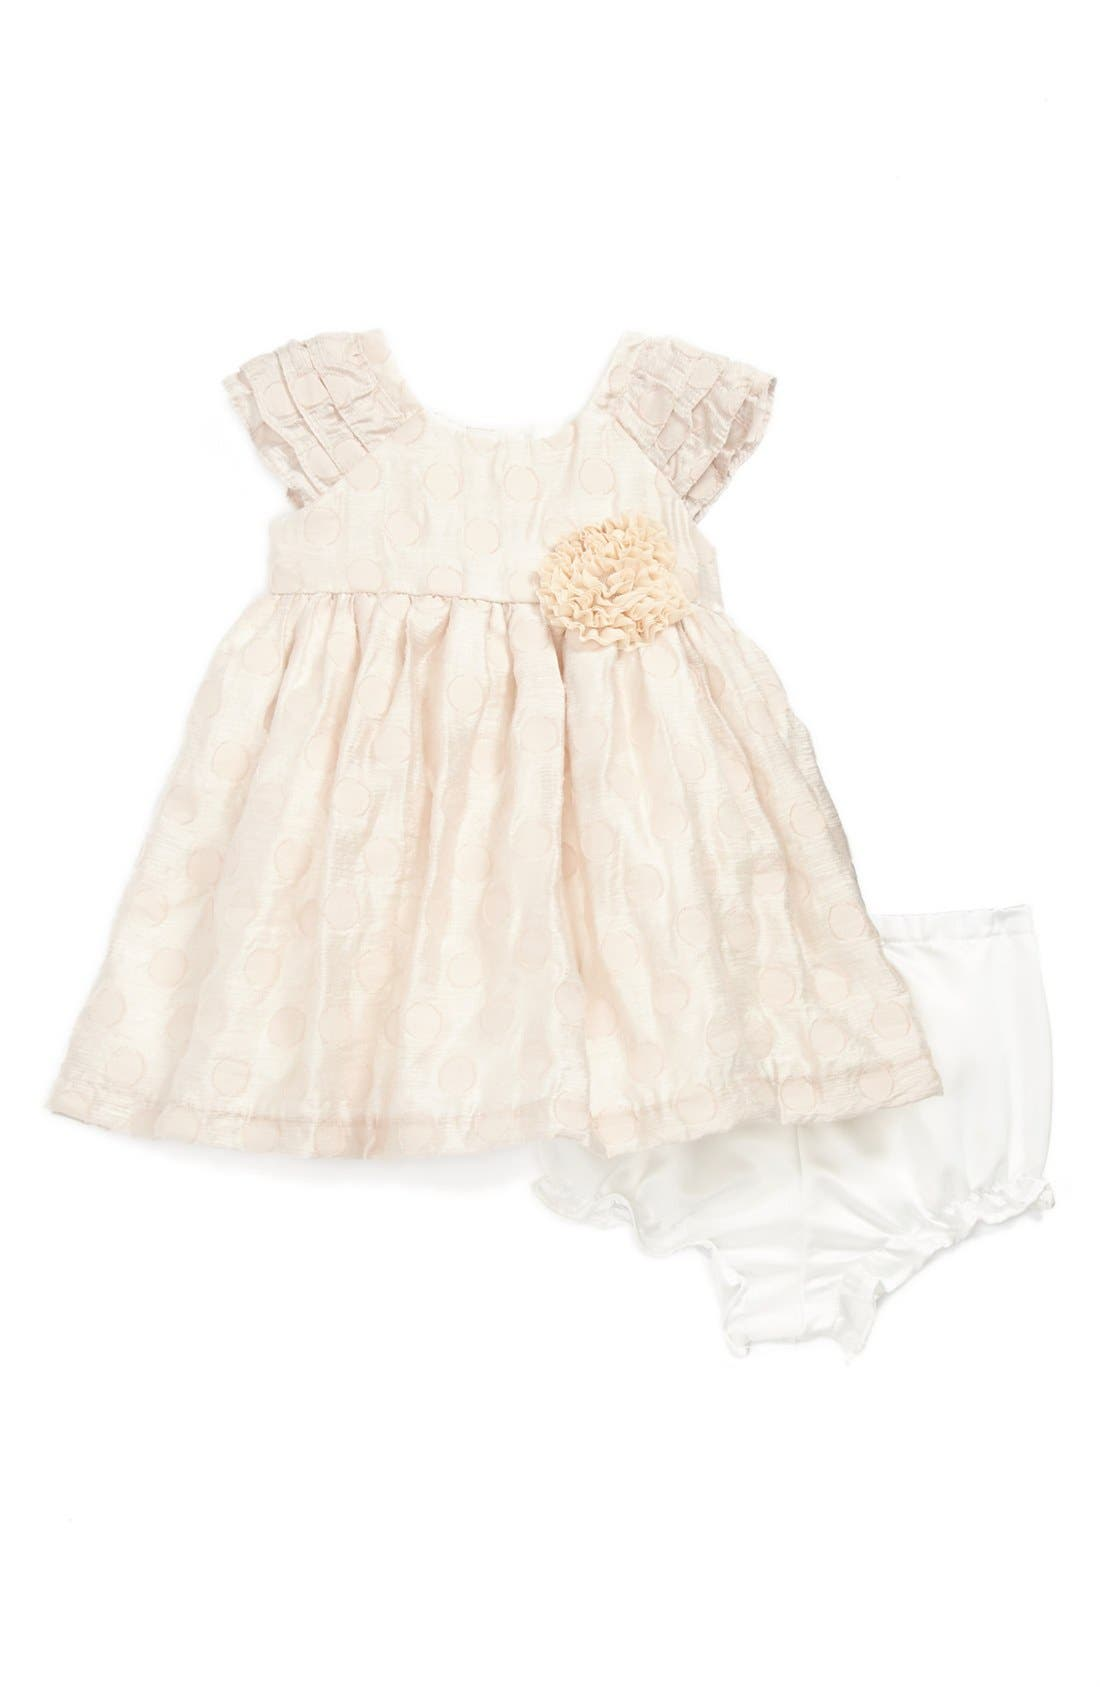 Alternate Image 1 Selected - Laura Ashley Brocade Dress (Baby Girls)